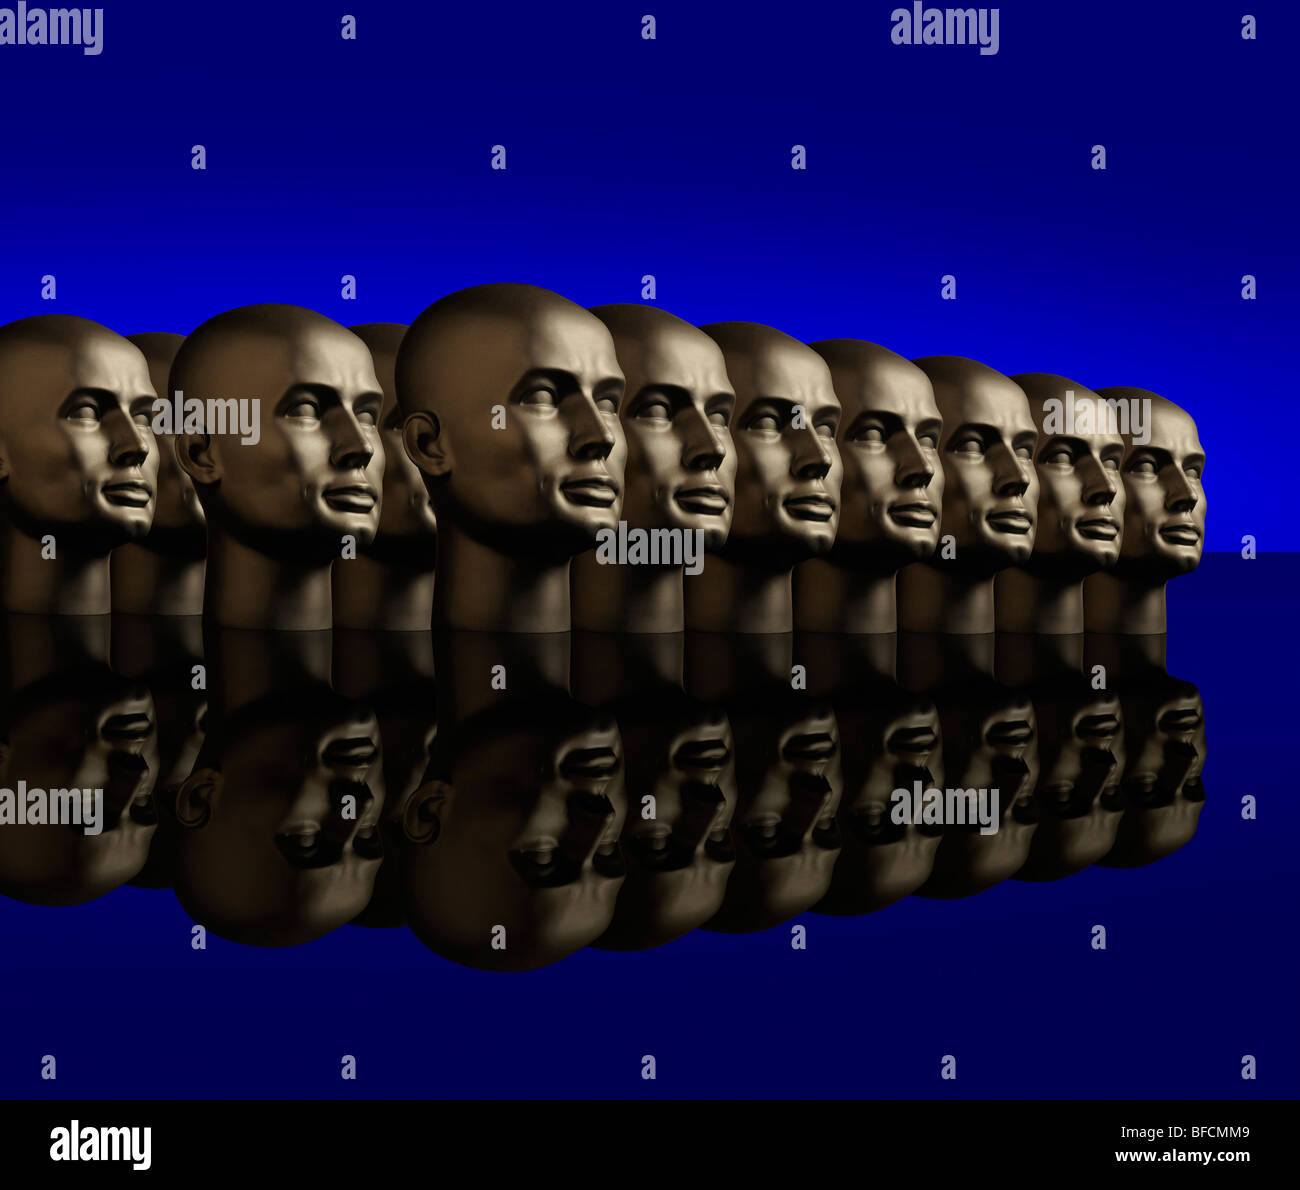 Metallic android mannequin heads lined up in several rows on a reflective black surface with a blue background - Stock Image